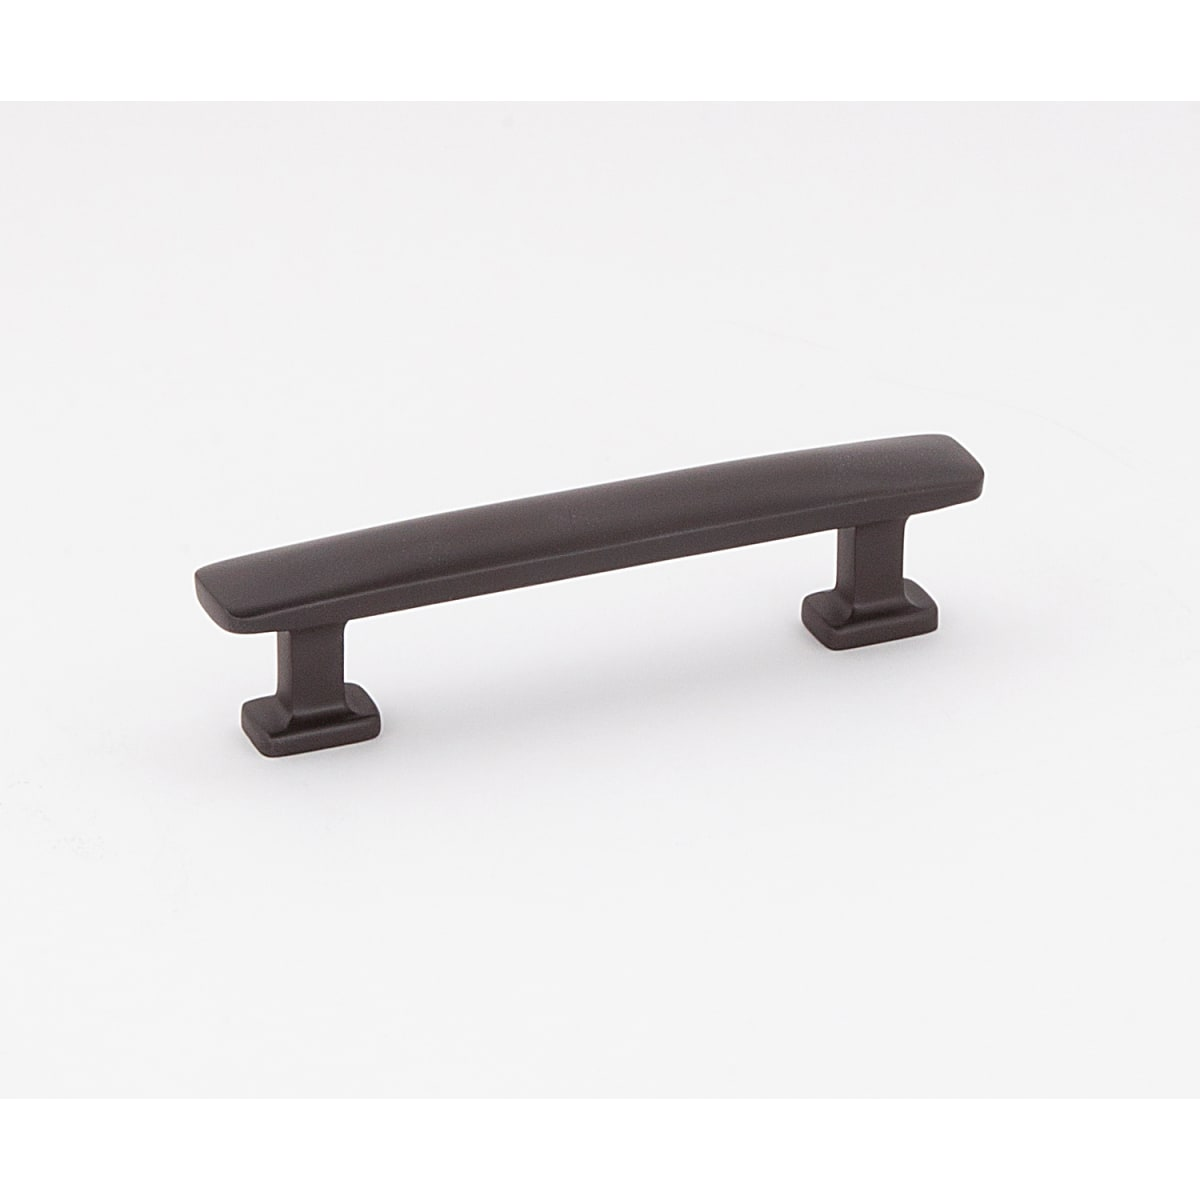 Alno Cloud 3-1/2 Inch Center to Center Bar Cabinet Pull